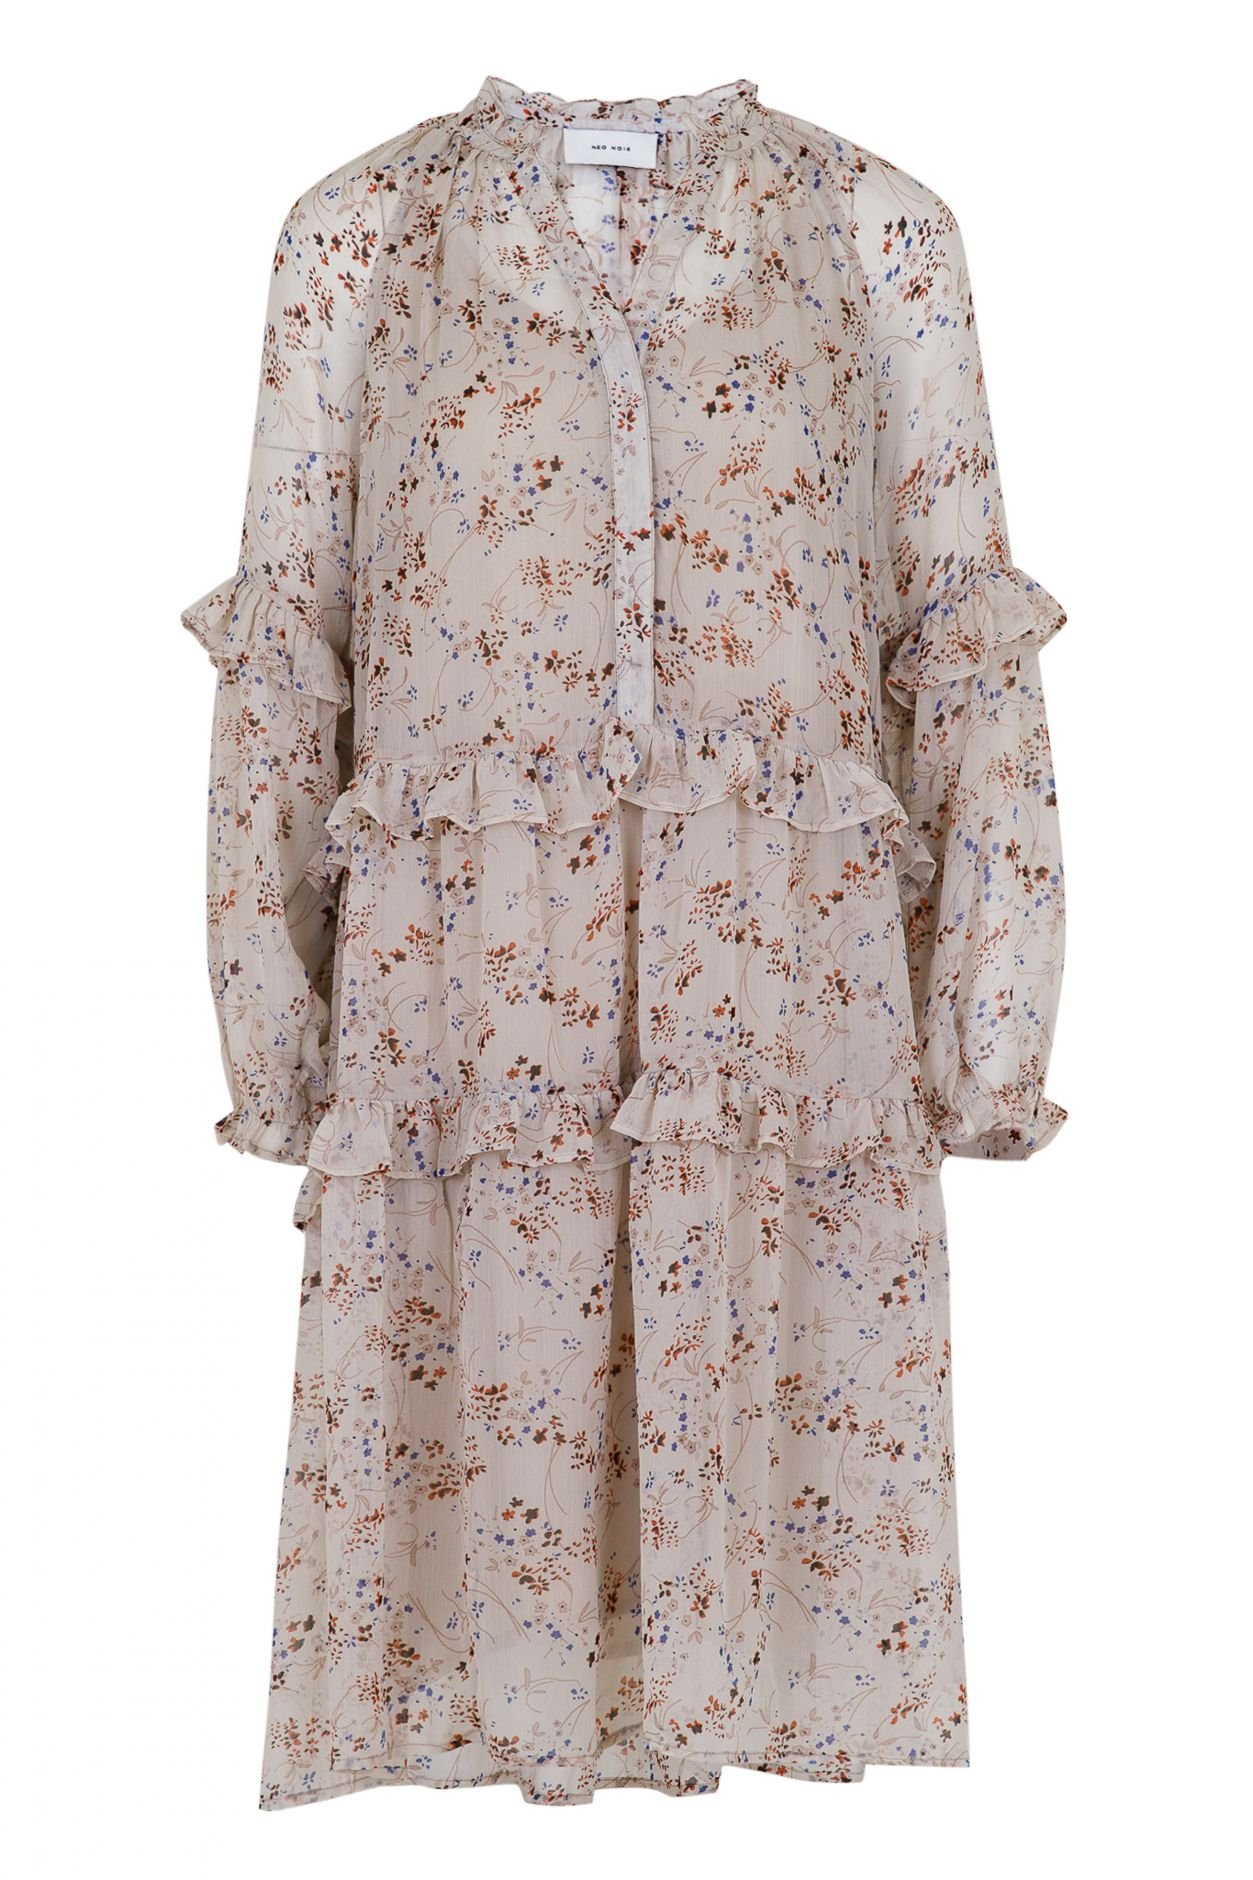 Neo Noir Hampton Airy Flower Dress - White